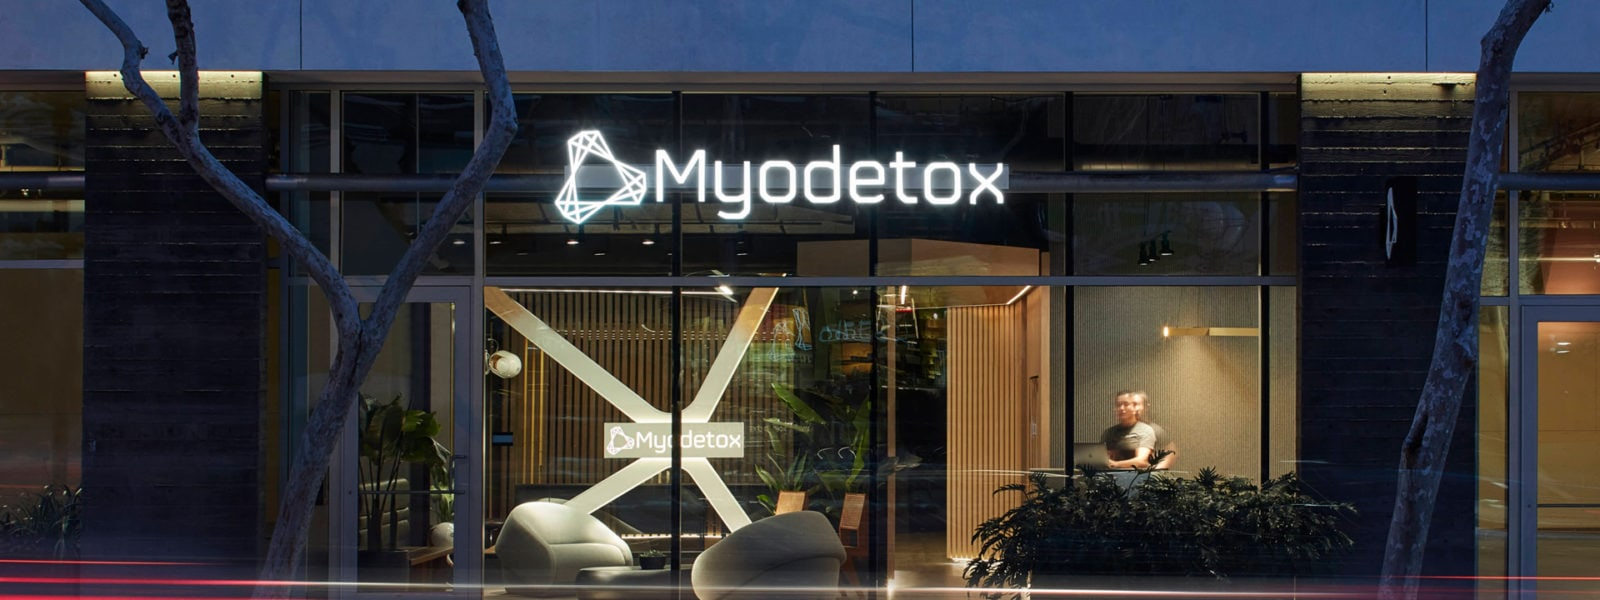 Myodetox, West Hollywood by Reflect Architecture